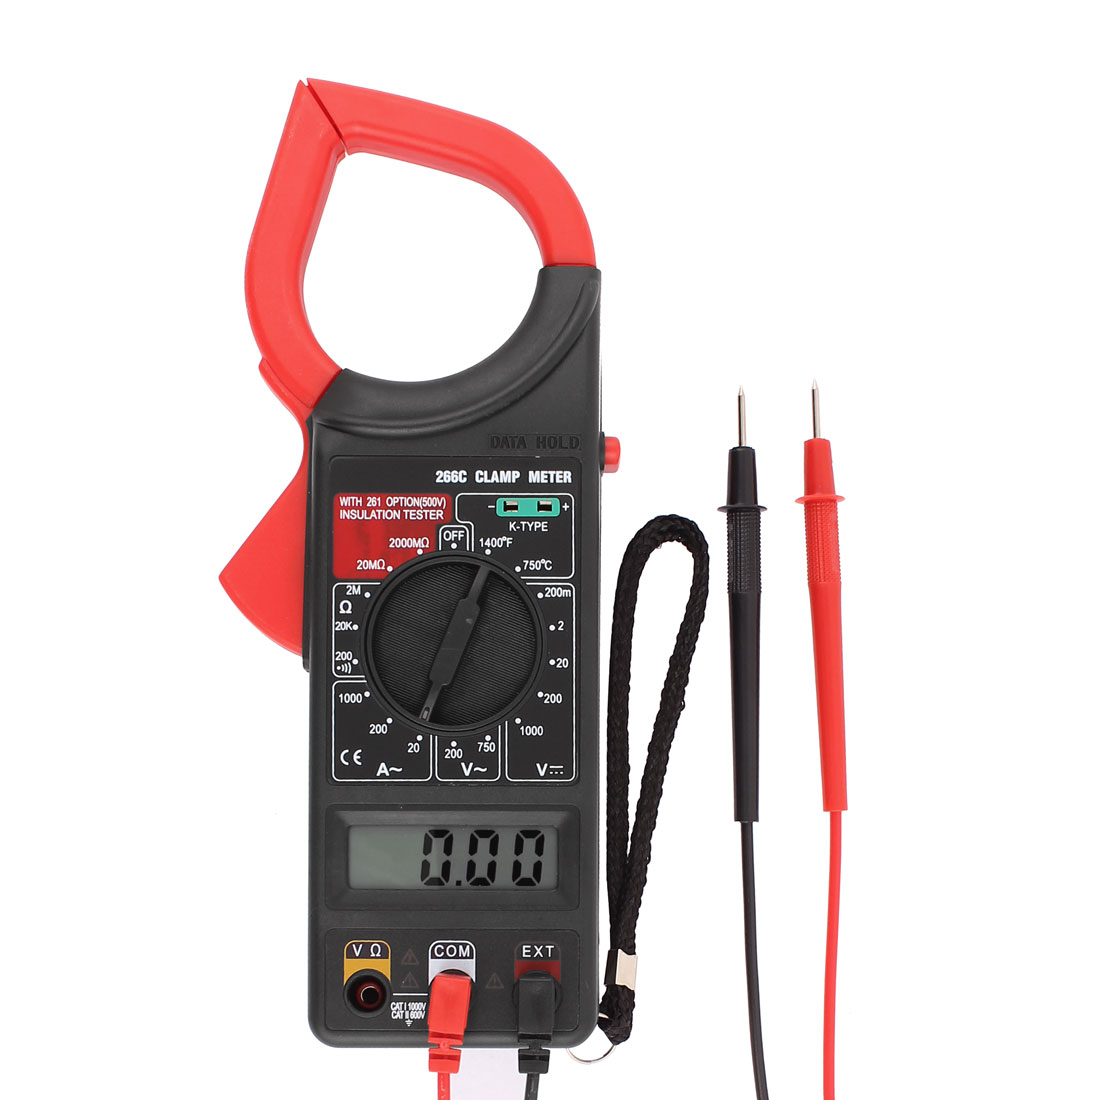 DT266C Plastic Housing Ohm Volt Amplifier LCD Display Clamp Meter Black Red